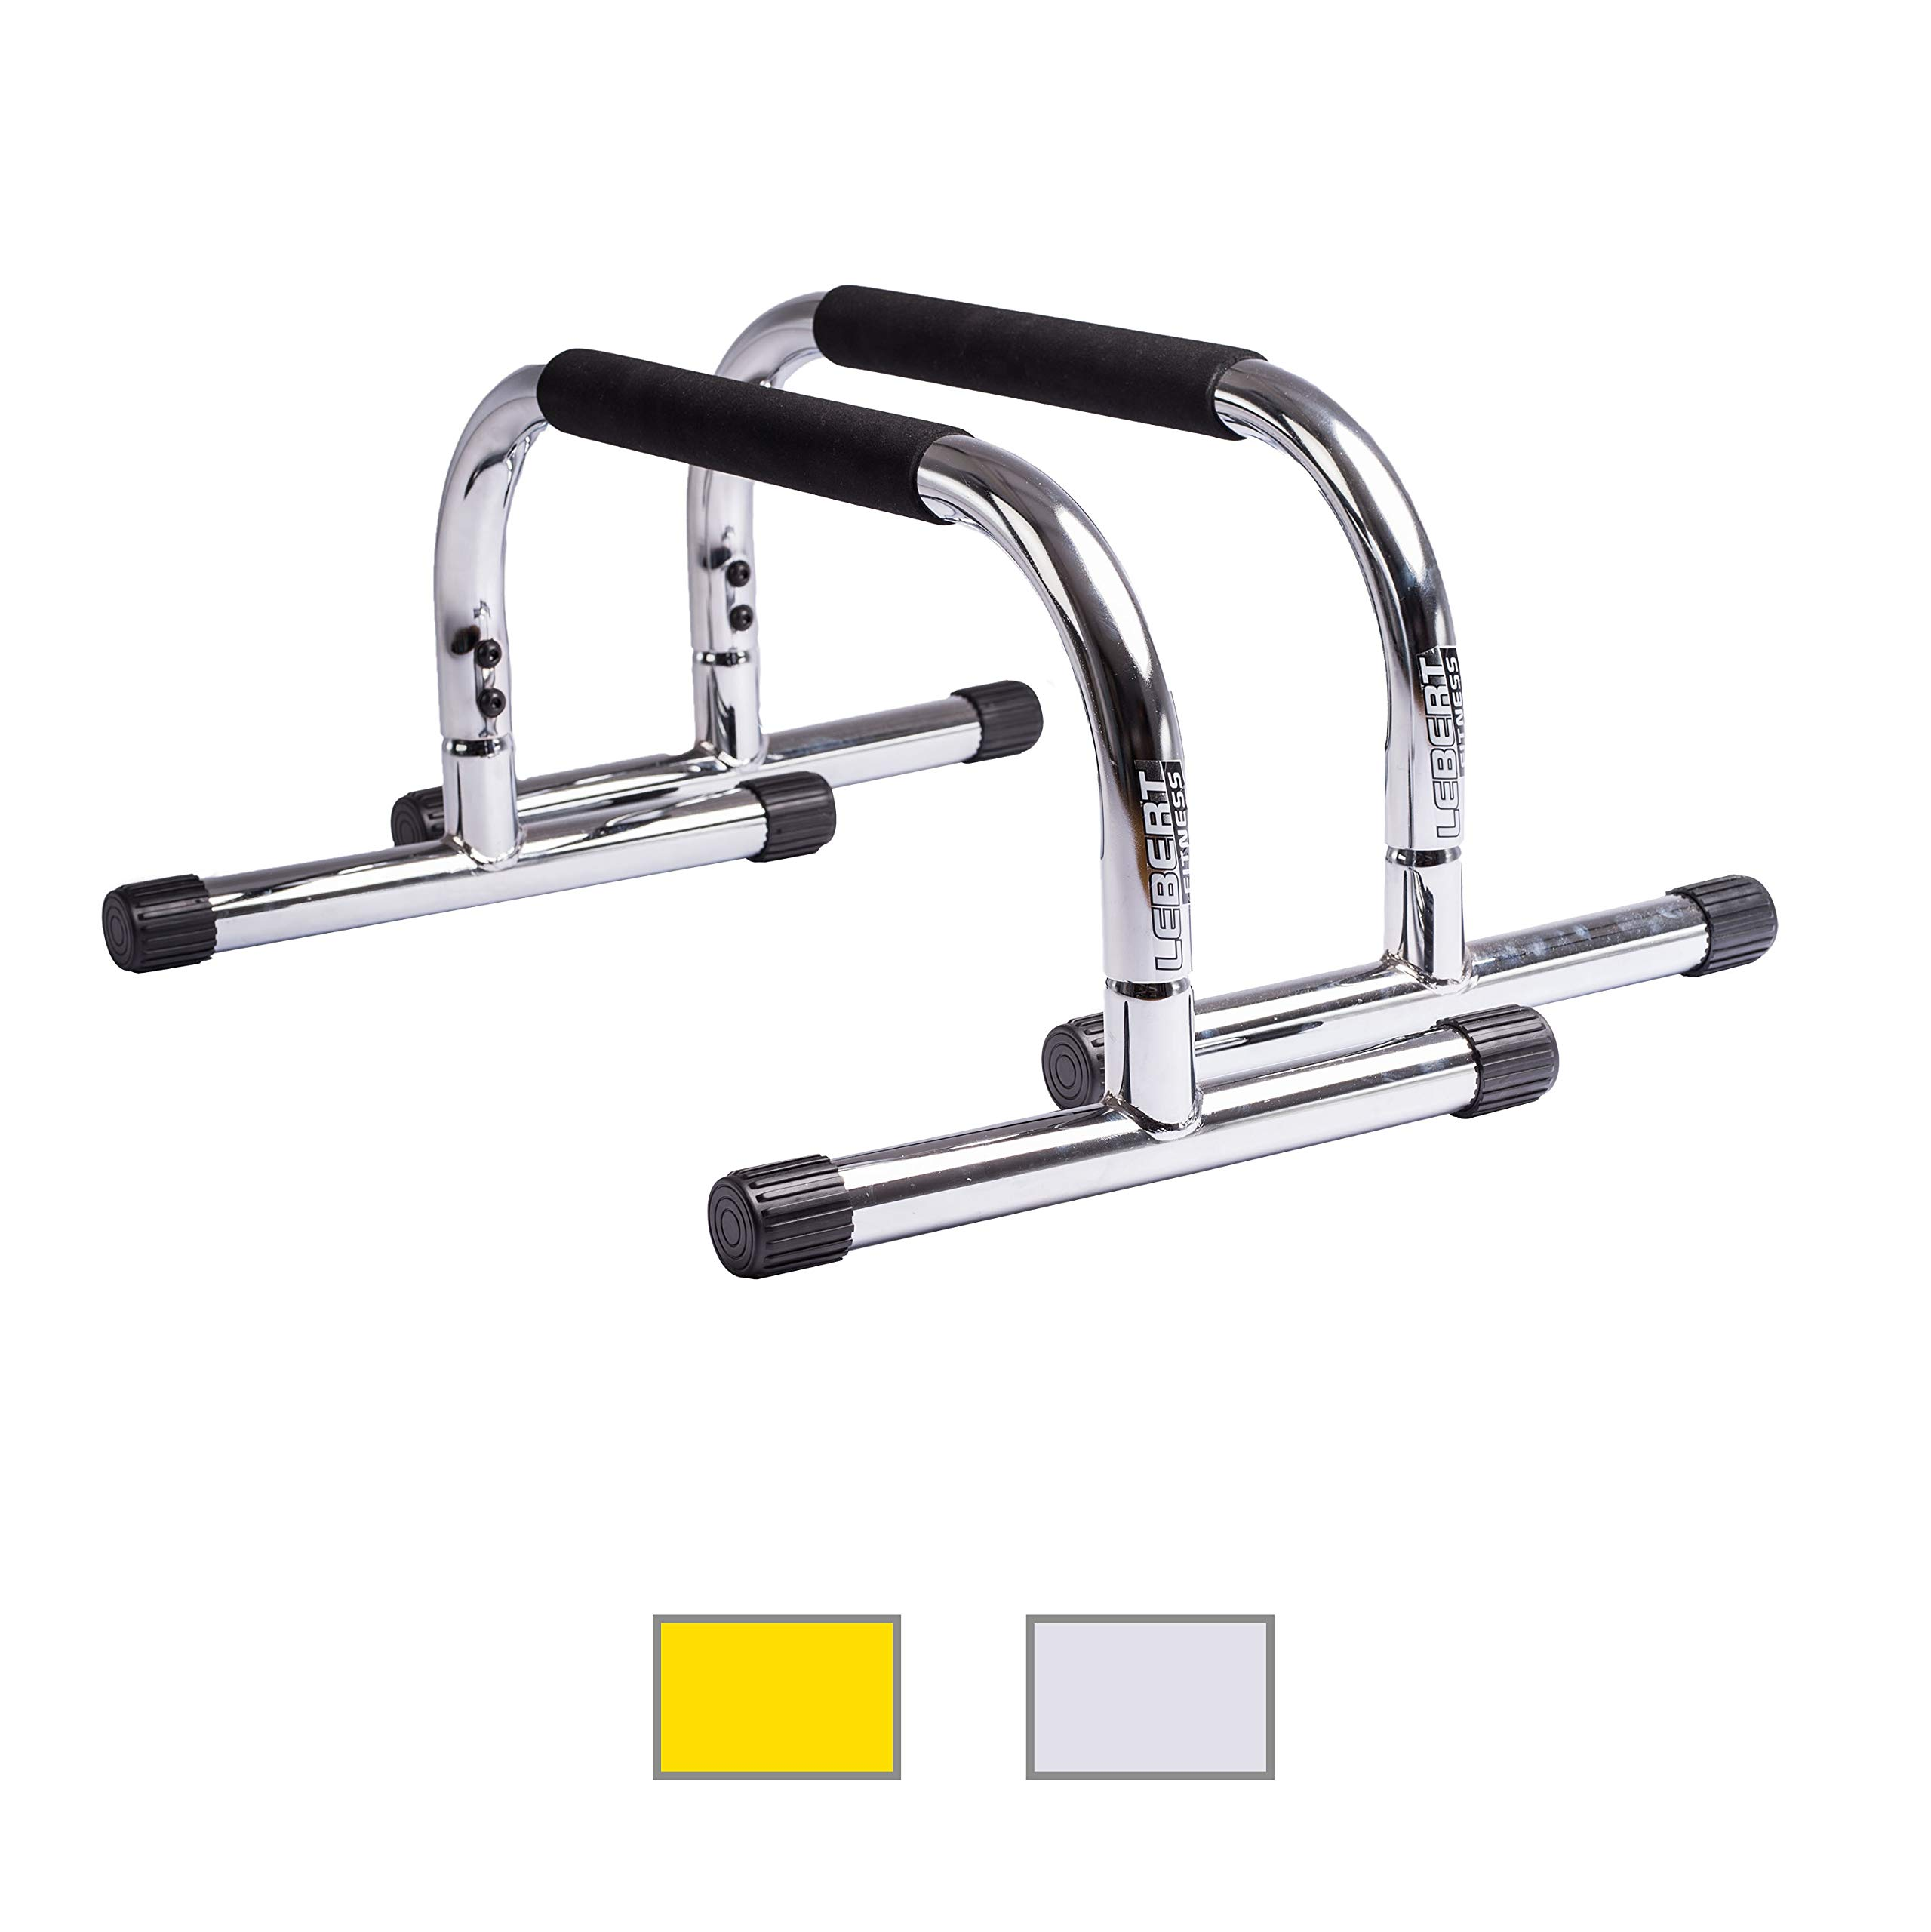 Lebert Fitness Parallettes, Frank Medrano Signature, Chrome